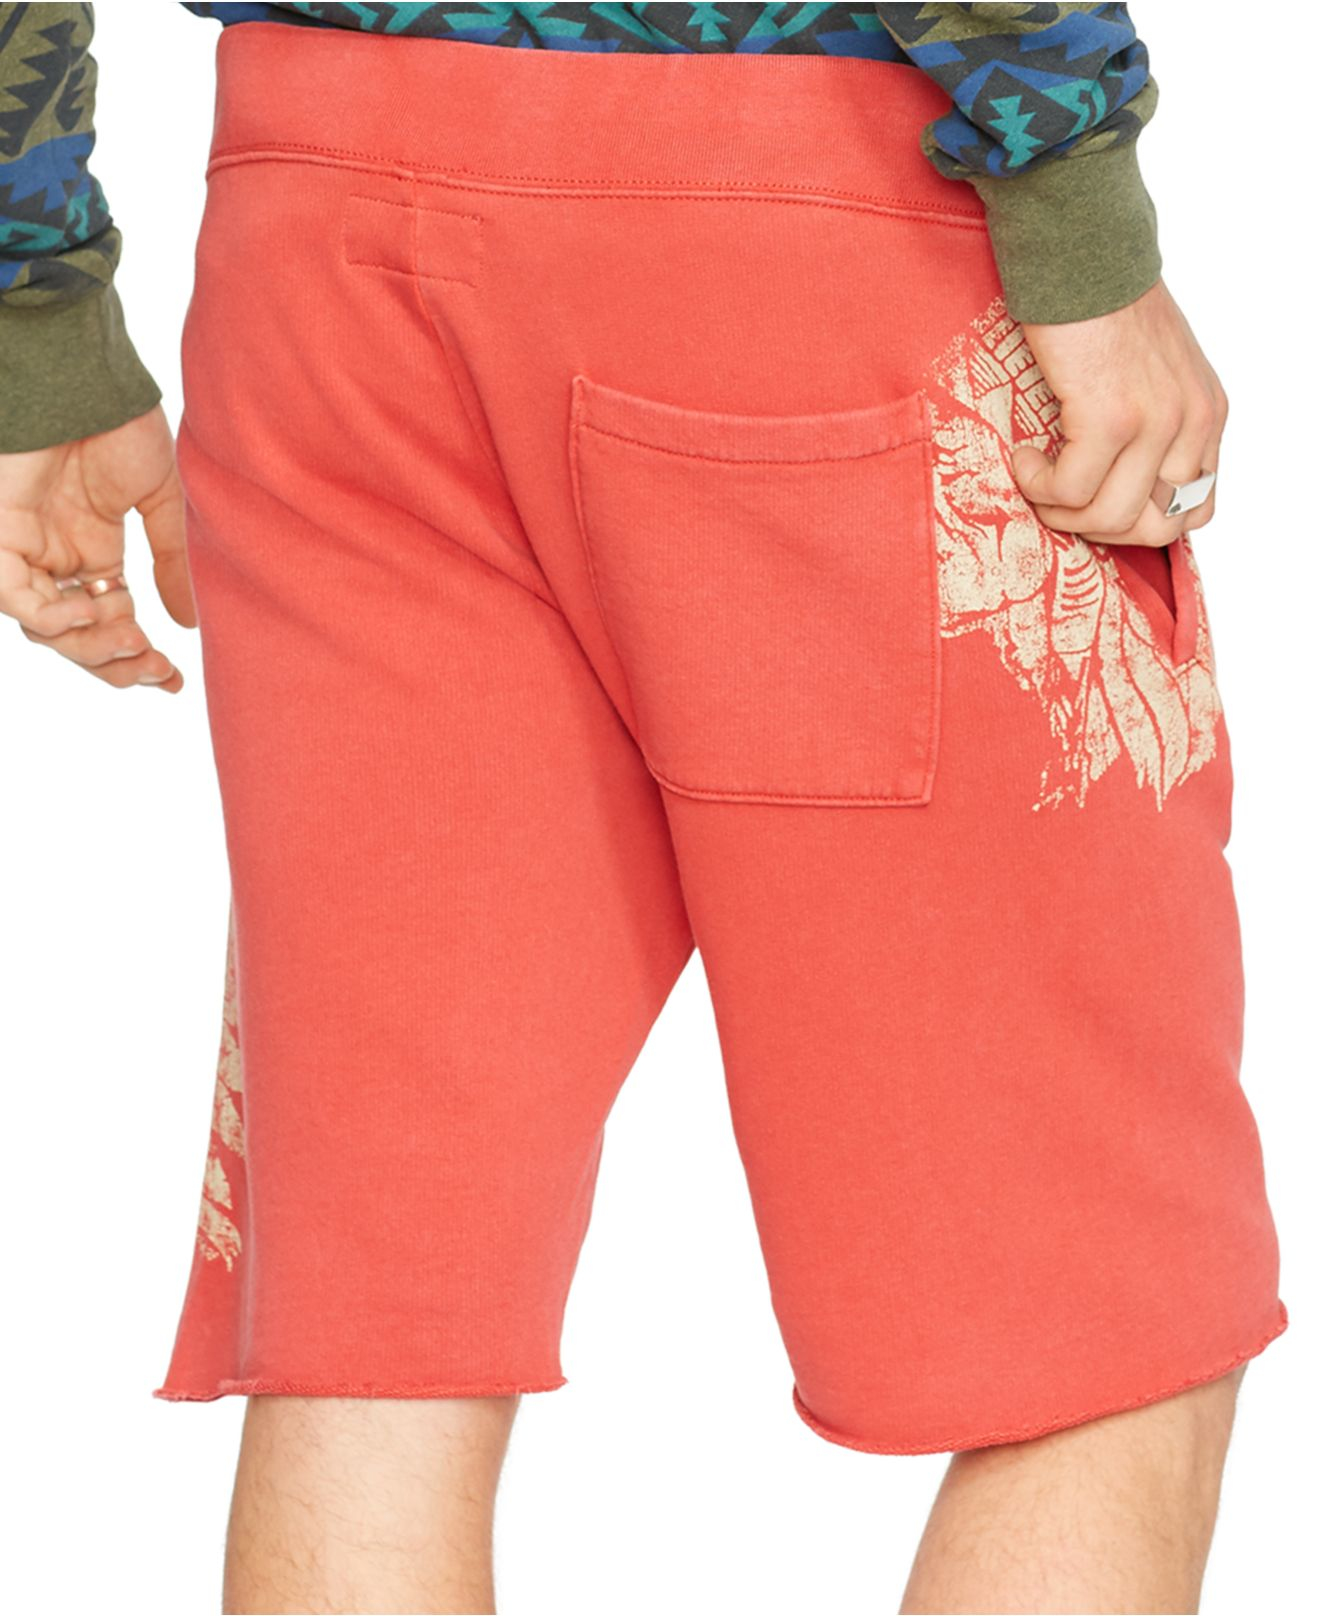 89219a6de9c Denim & Supply Ralph Lauren French Terry Graphic Shorts in Red for Men -  Lyst